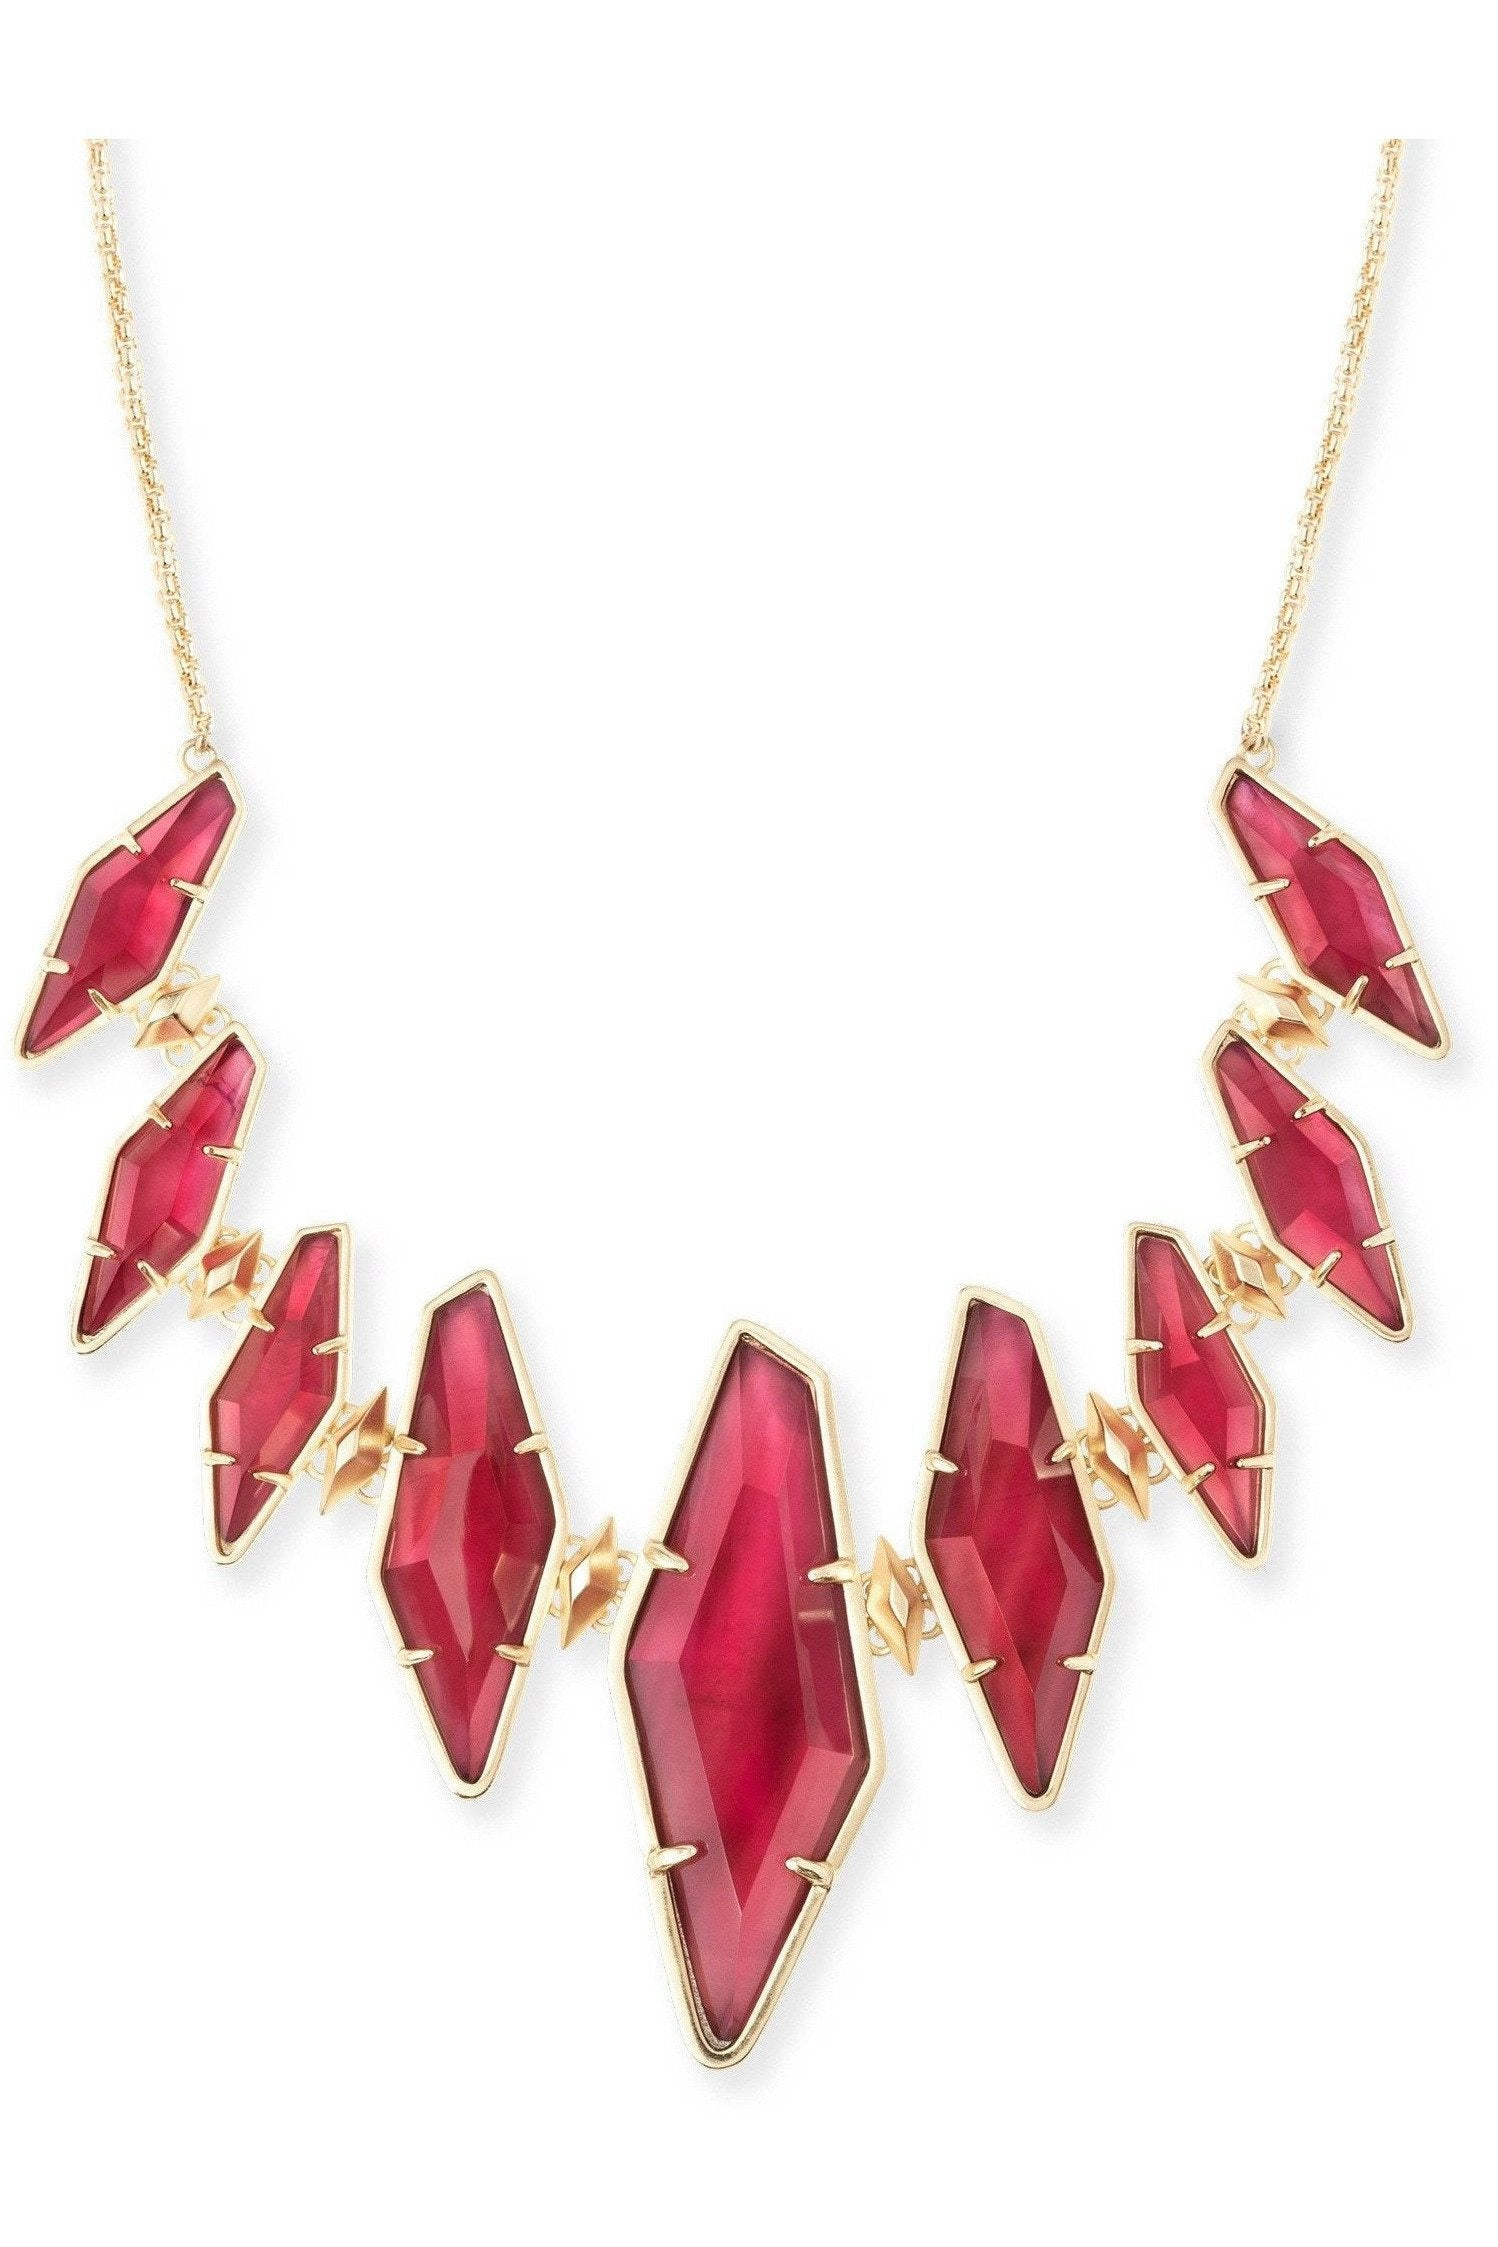 Kendra Scott: Berniece Gold Collar Necklace In Burgundy Illusion - RMC Boutique  - 1